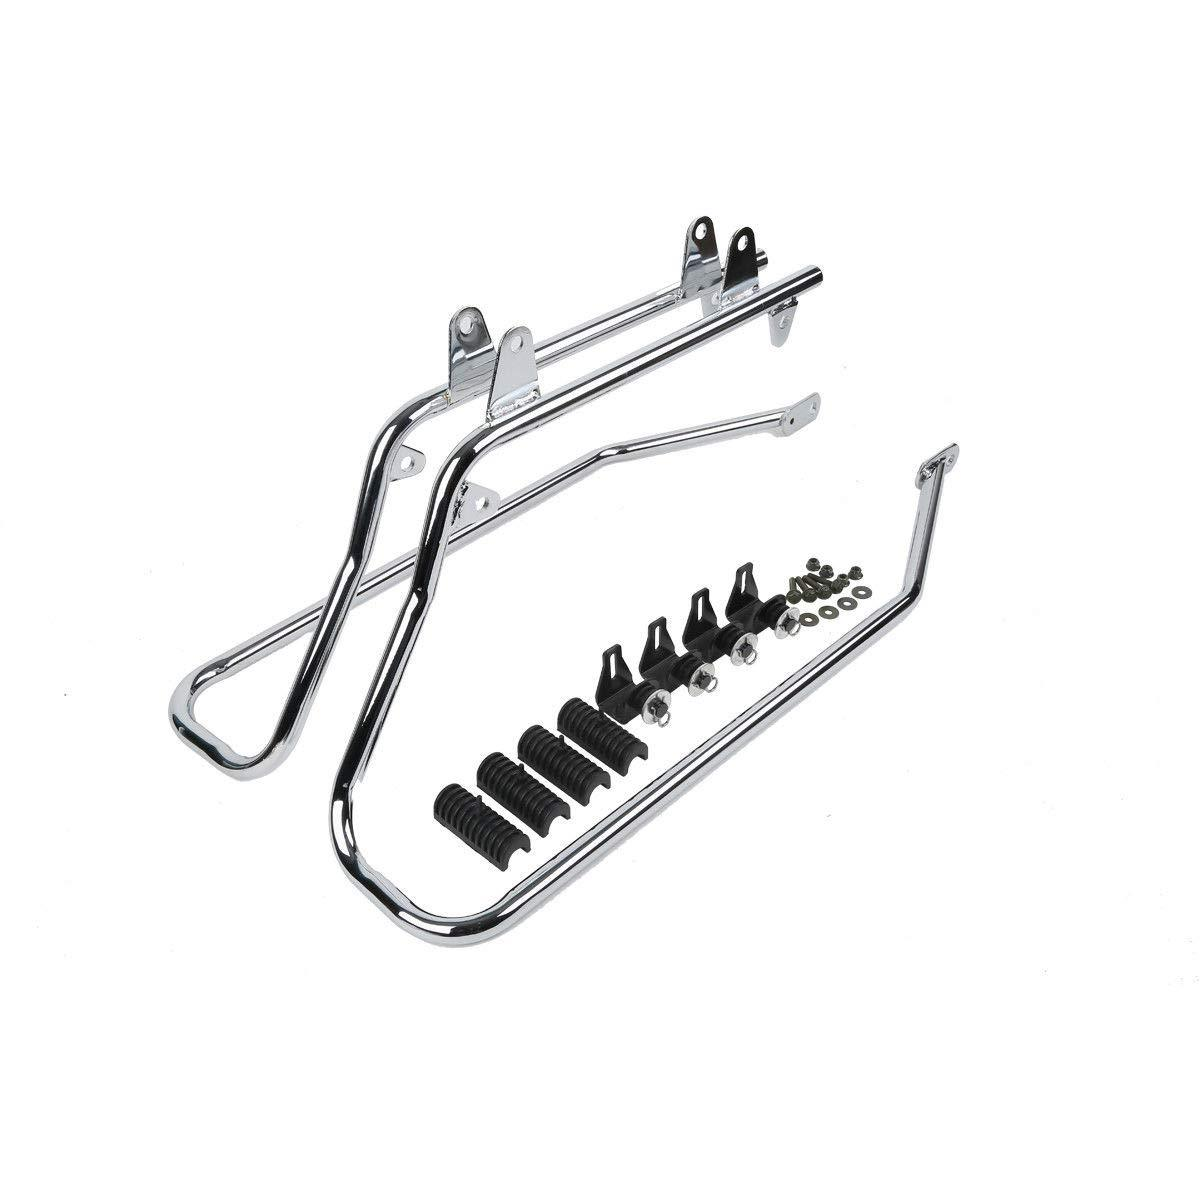 Bagger Brothers Saddlebag Rails Conversion Kit Fits 1984